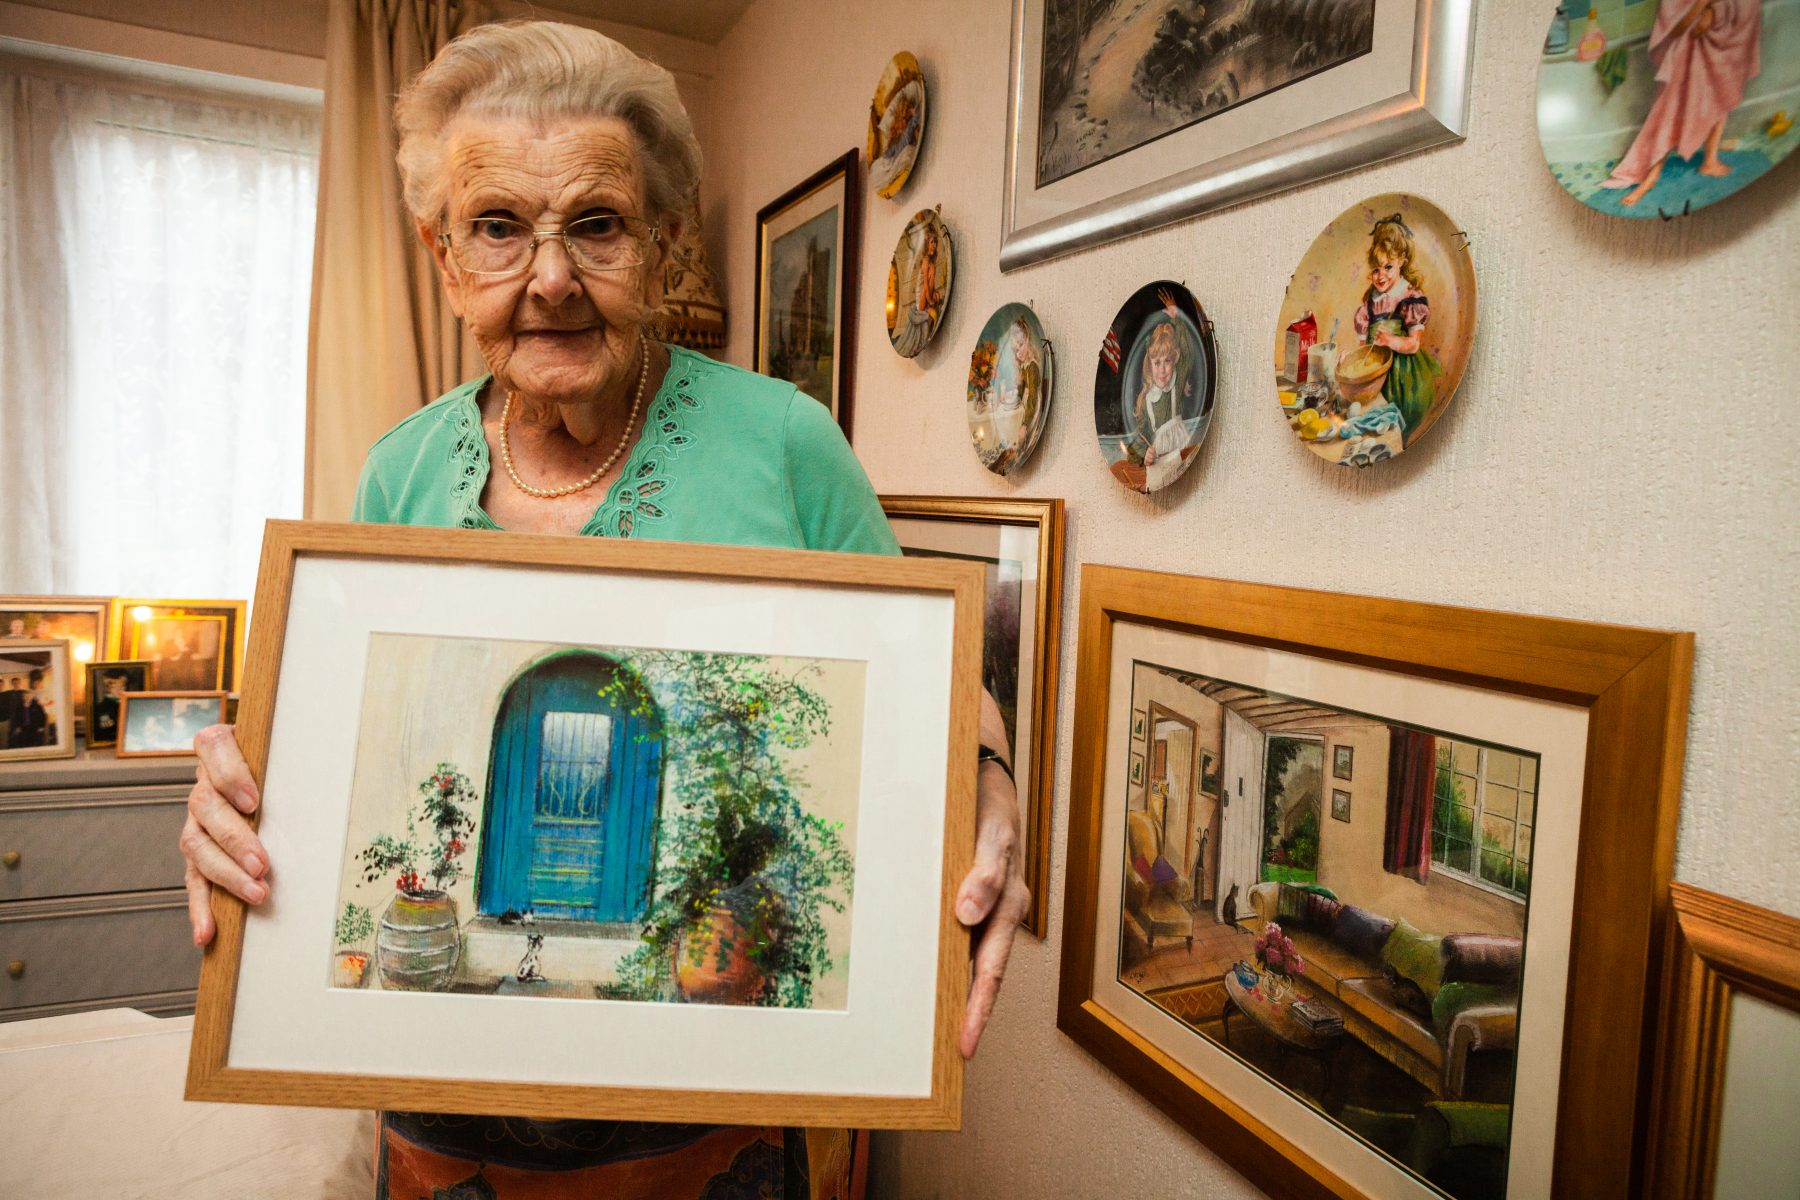 Margaret McNeil continues her love of painting at the age of 95 - despite being registered as blind. PR photograpphy by Holyrood PR in Edinburgh, Scotland